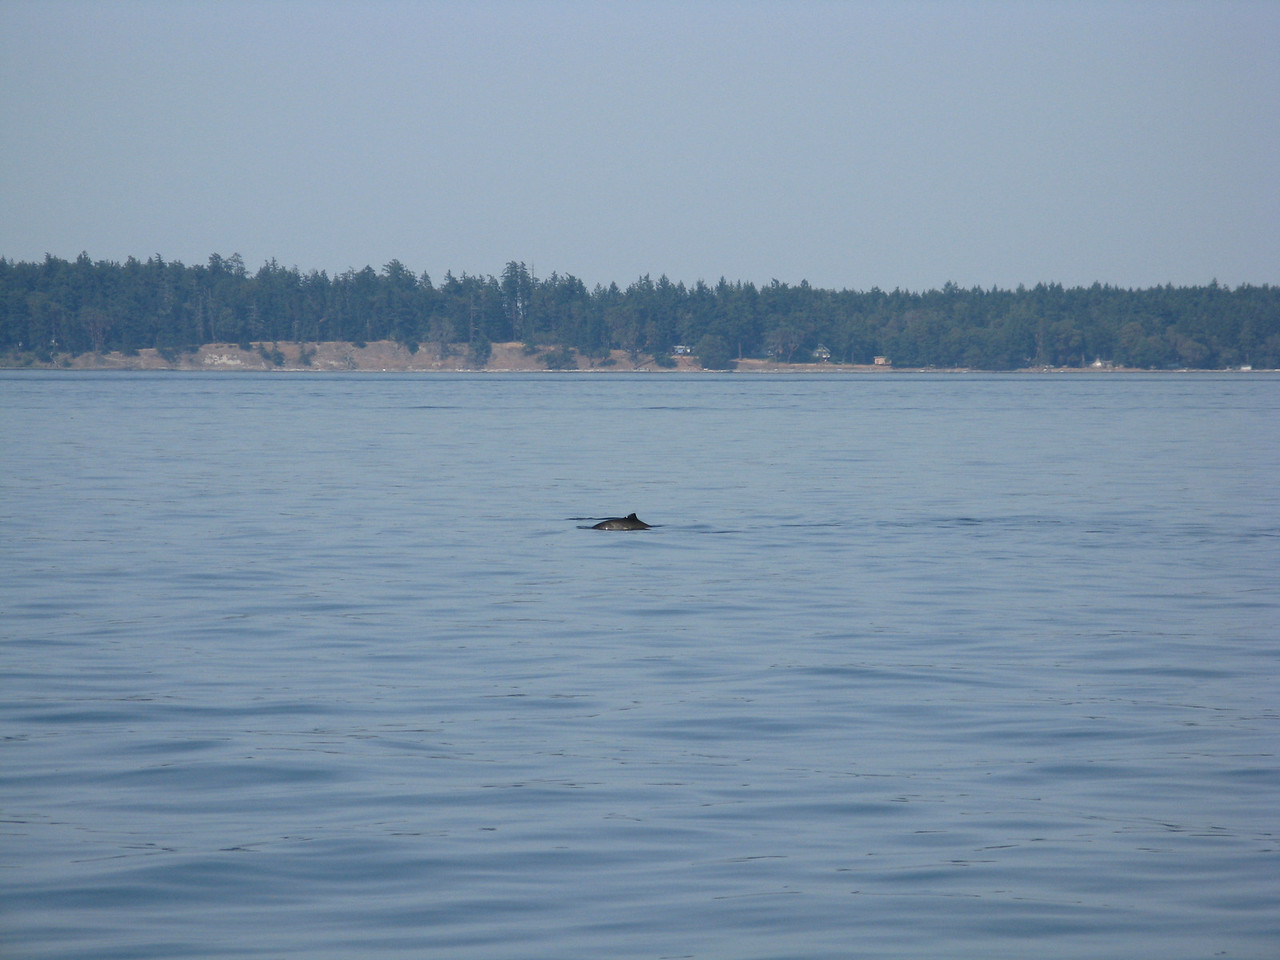 On the way back from Stuart Island, we saw porpoises.  These are probably Dall's porpoises.